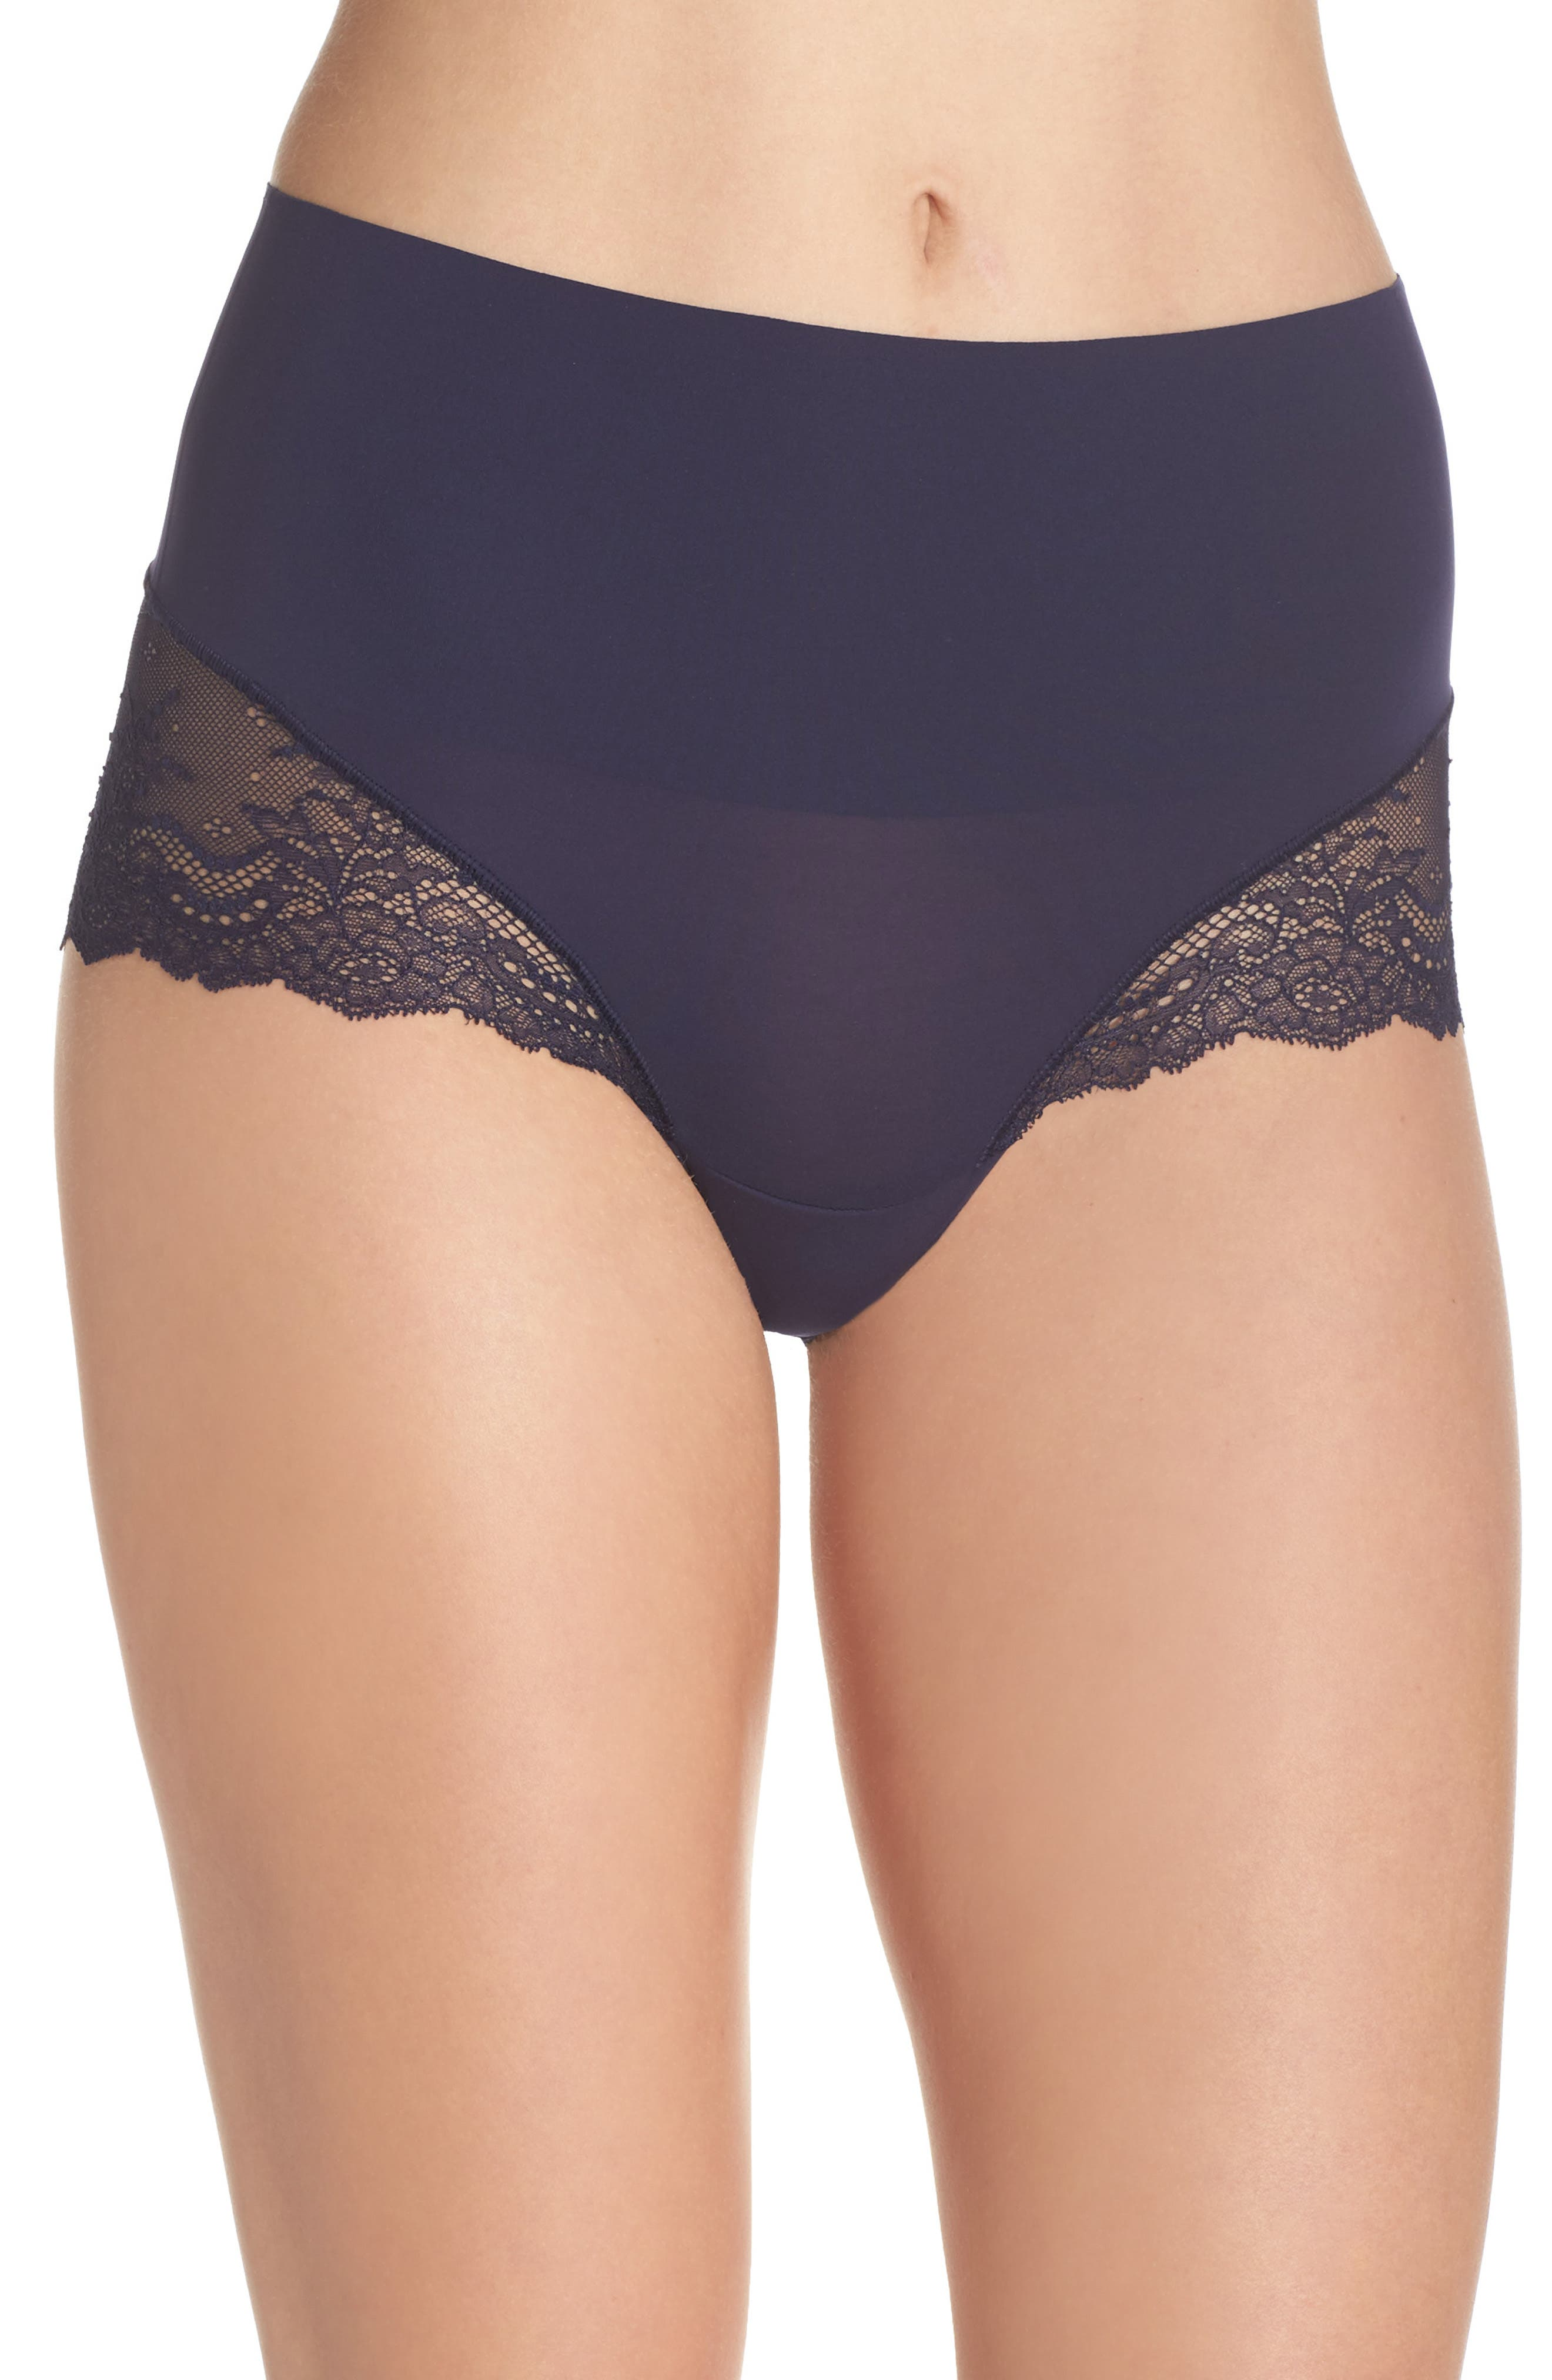 Undie-tectable Lace Hipster Panties,                             Main thumbnail 1, color,                             Midnight Navy